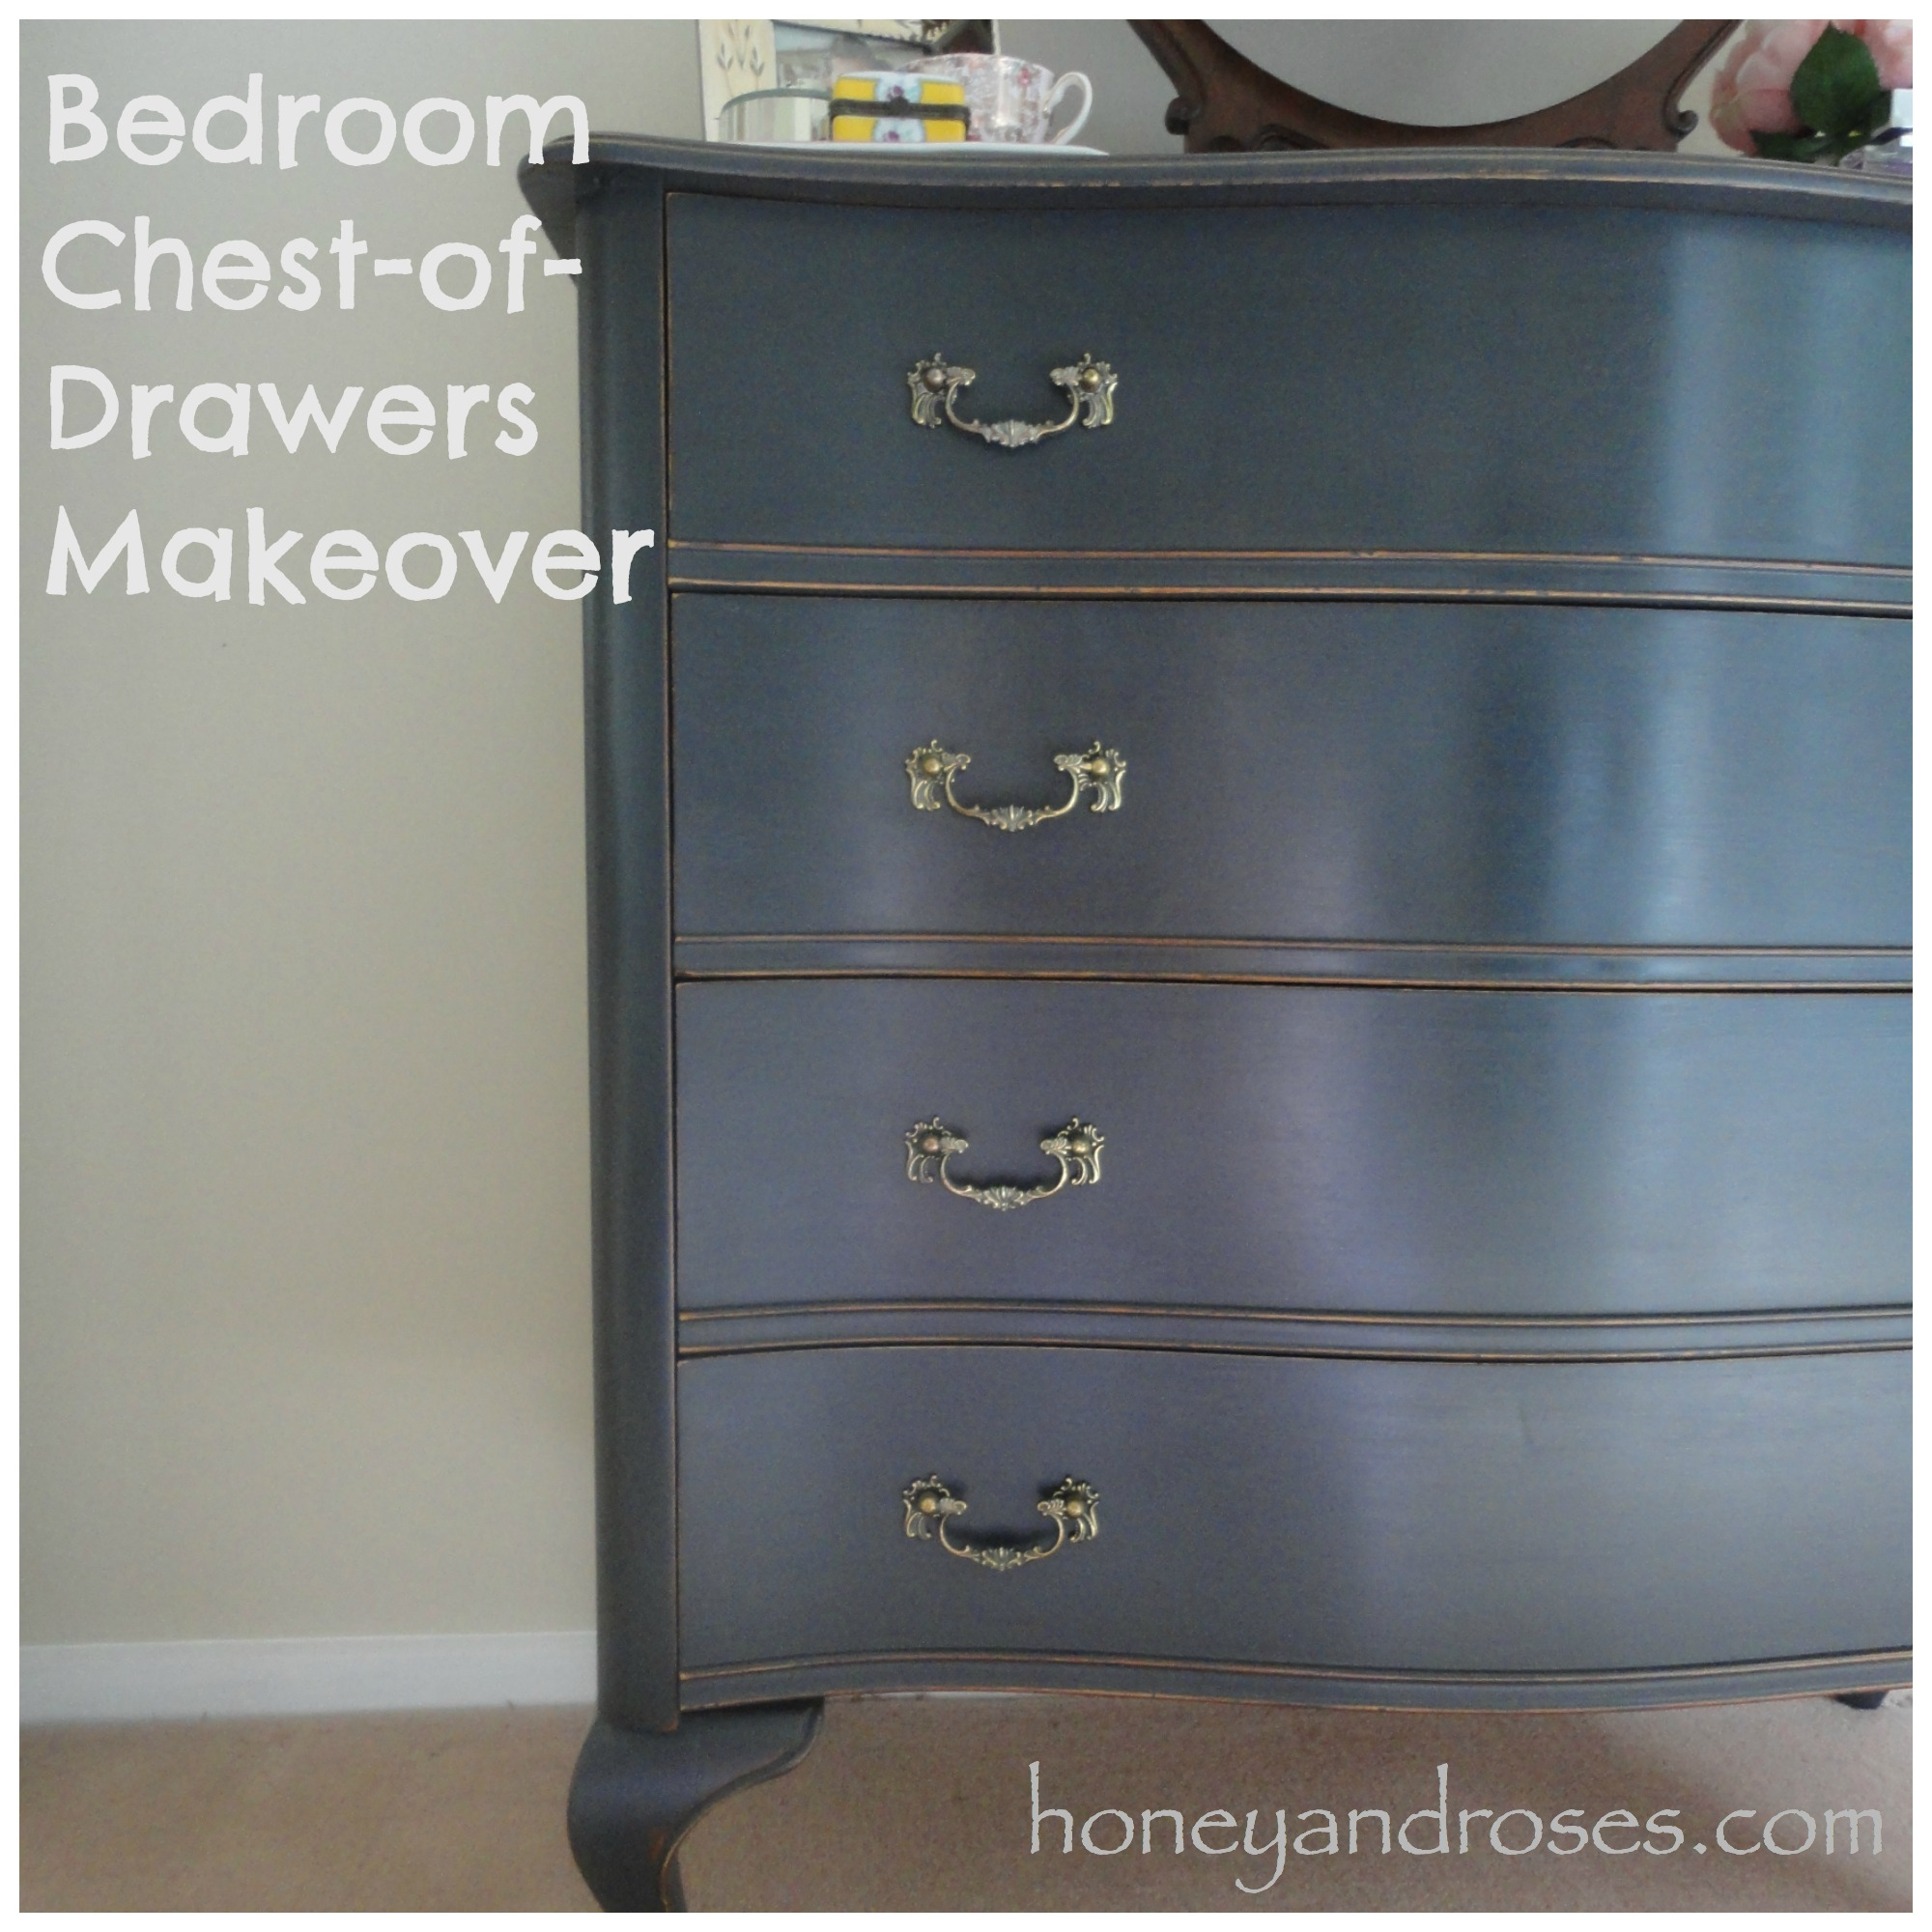 the drawers american boutique jessica drew mcclintock number products of chest collection item bedroom home bachelor